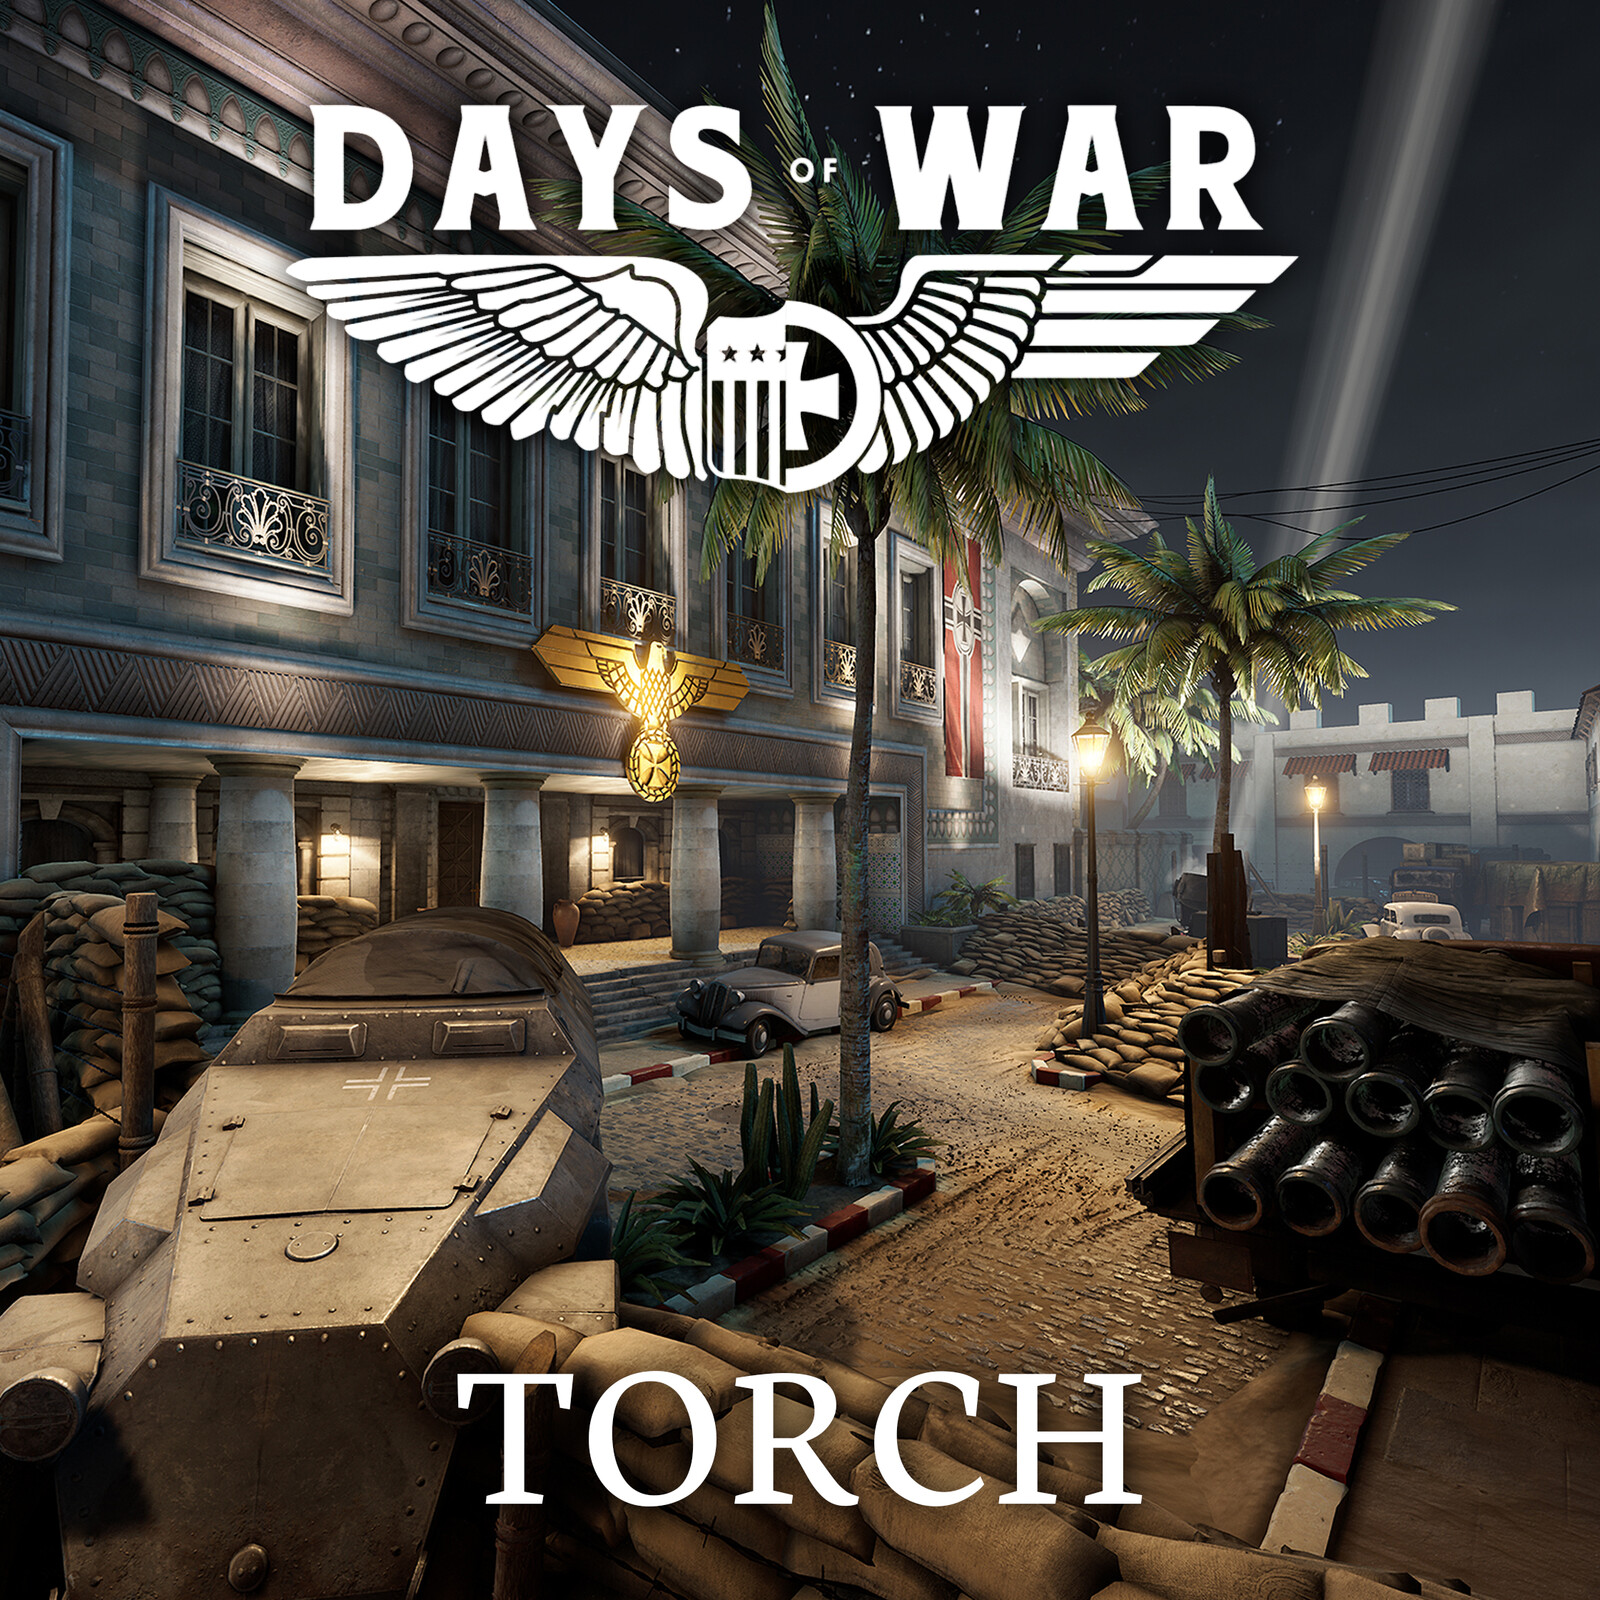 Days of War - Torch